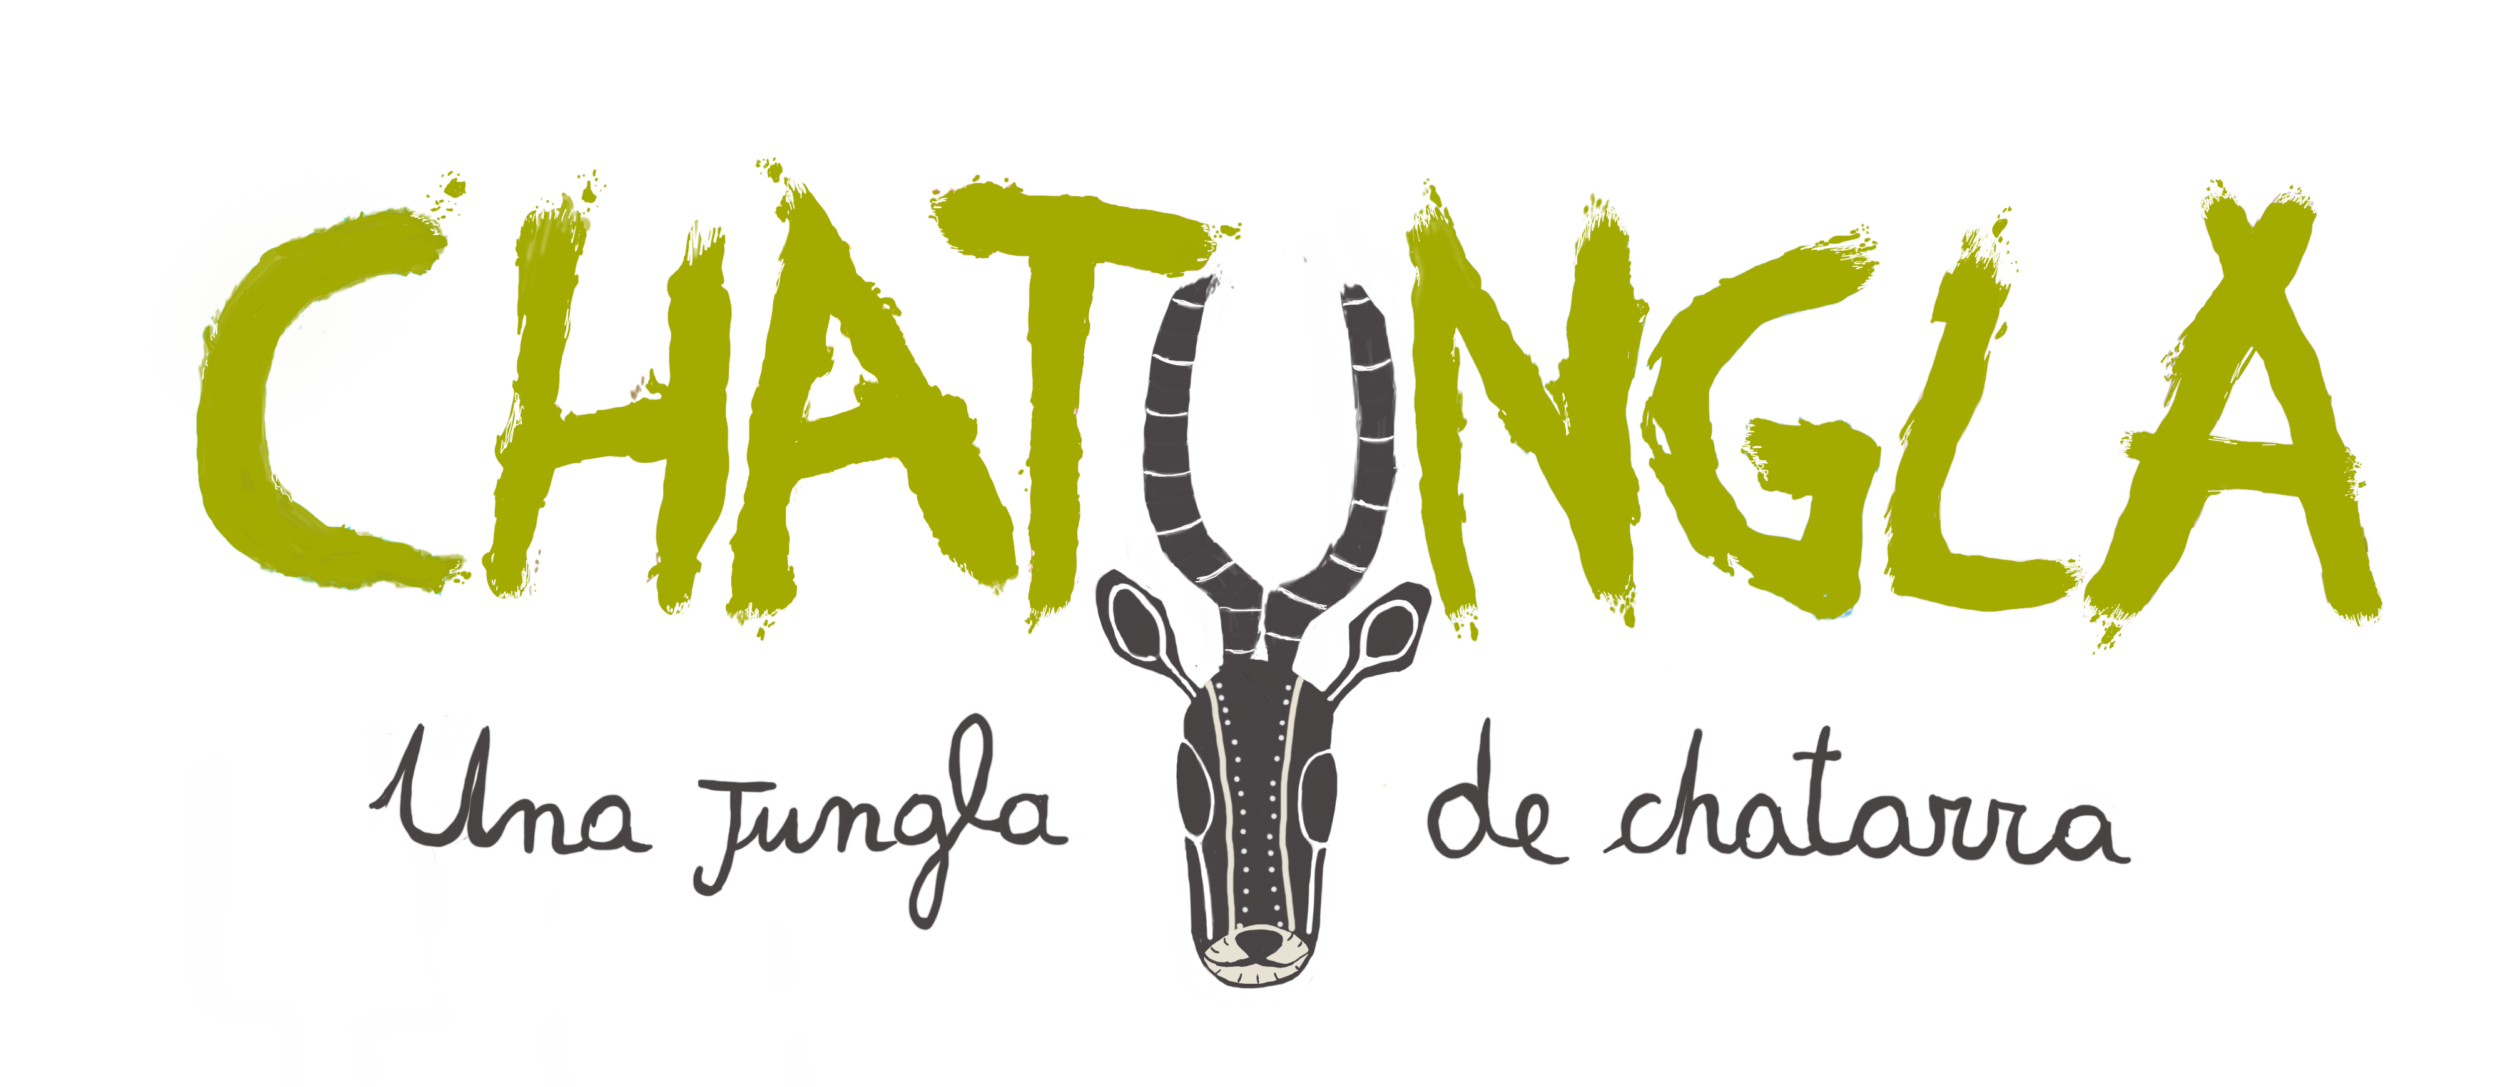 Chatungla web